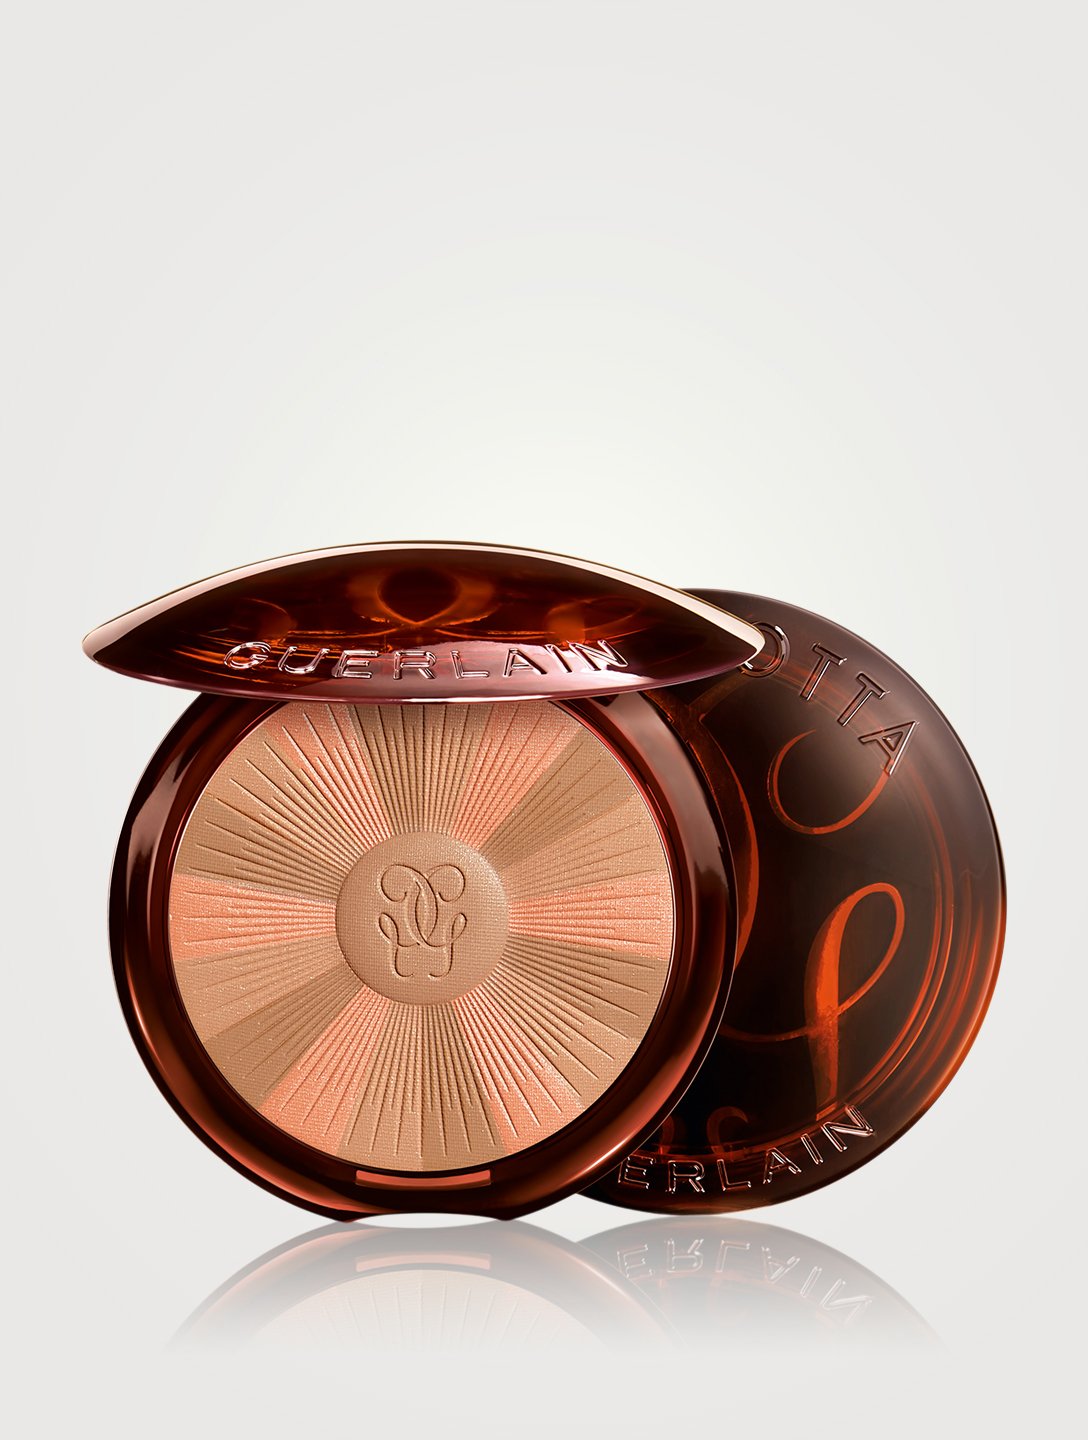 GUERLAIN Terracotta Light Beauty Bronze